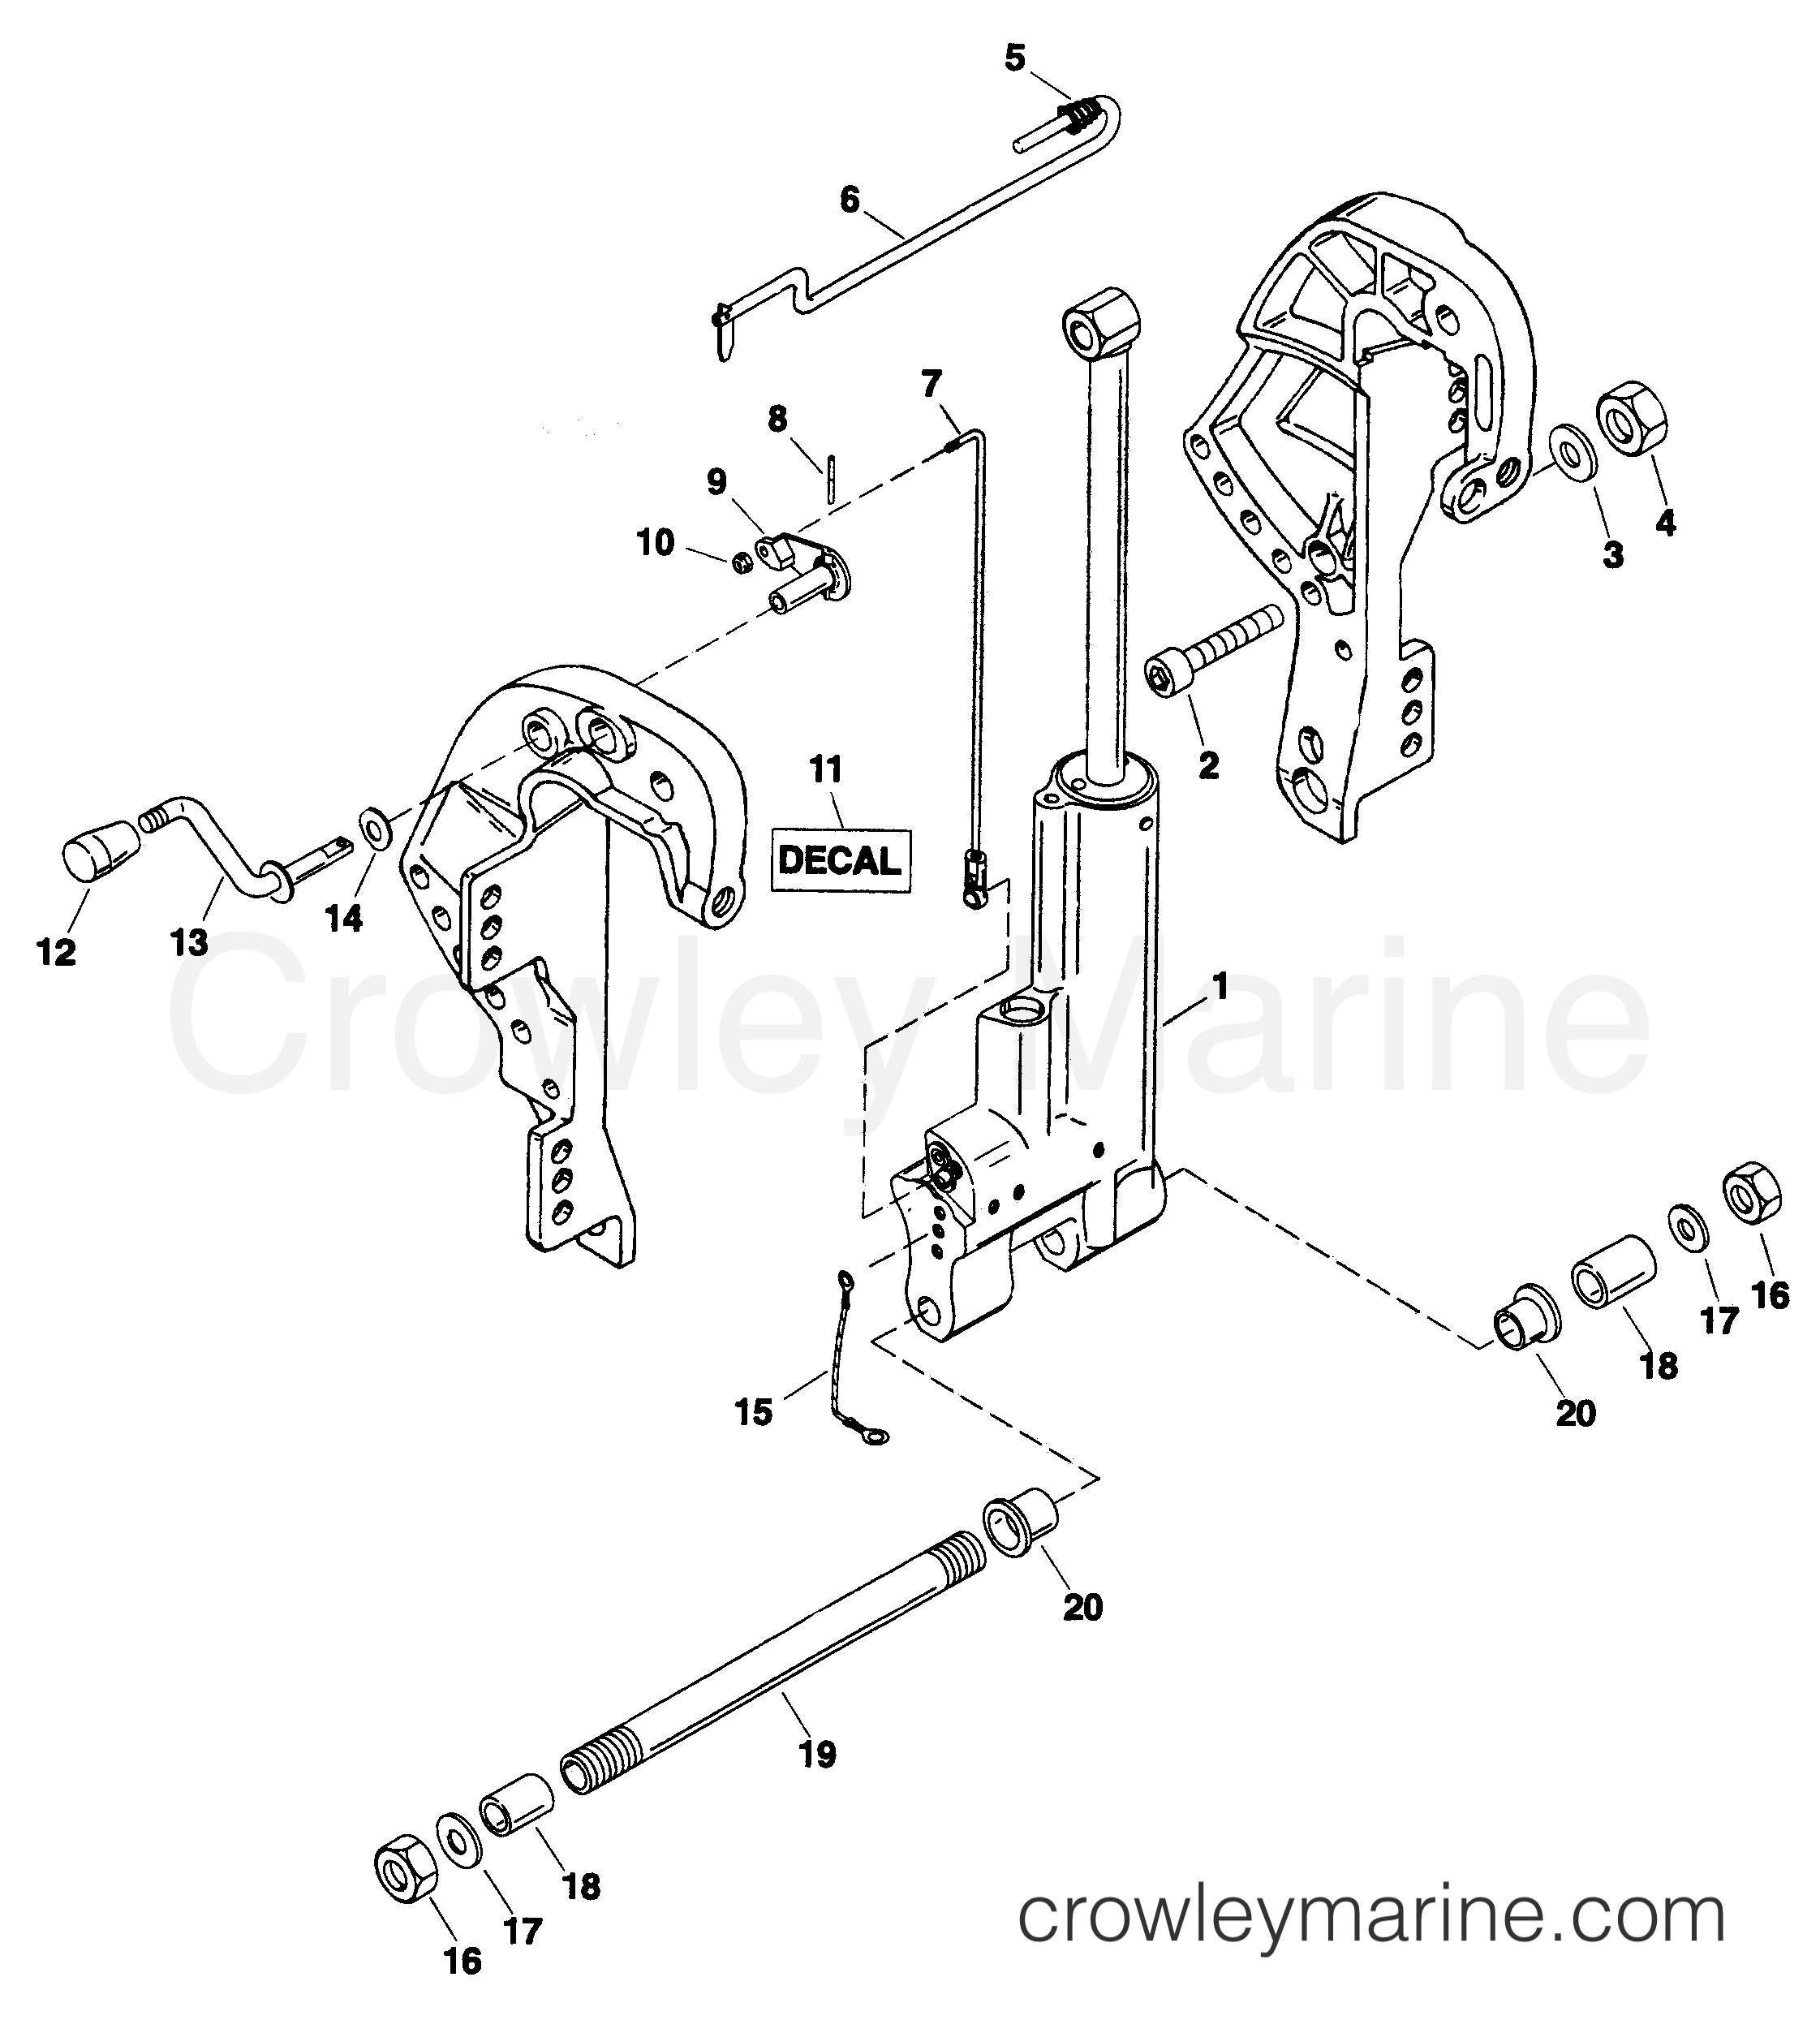 50 Hp Evinrude Wiring Diagram